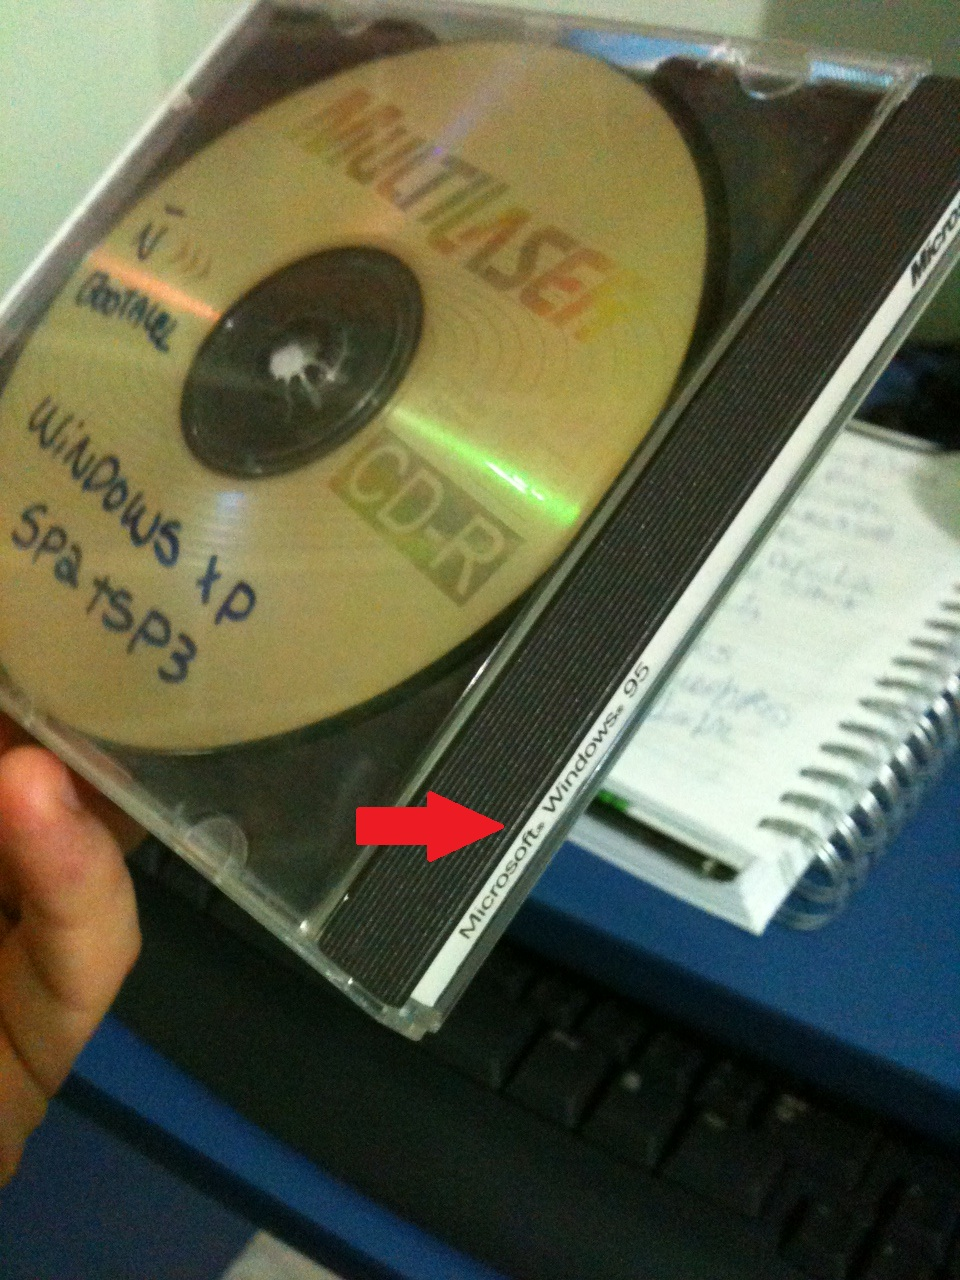 caixa cd windows 98